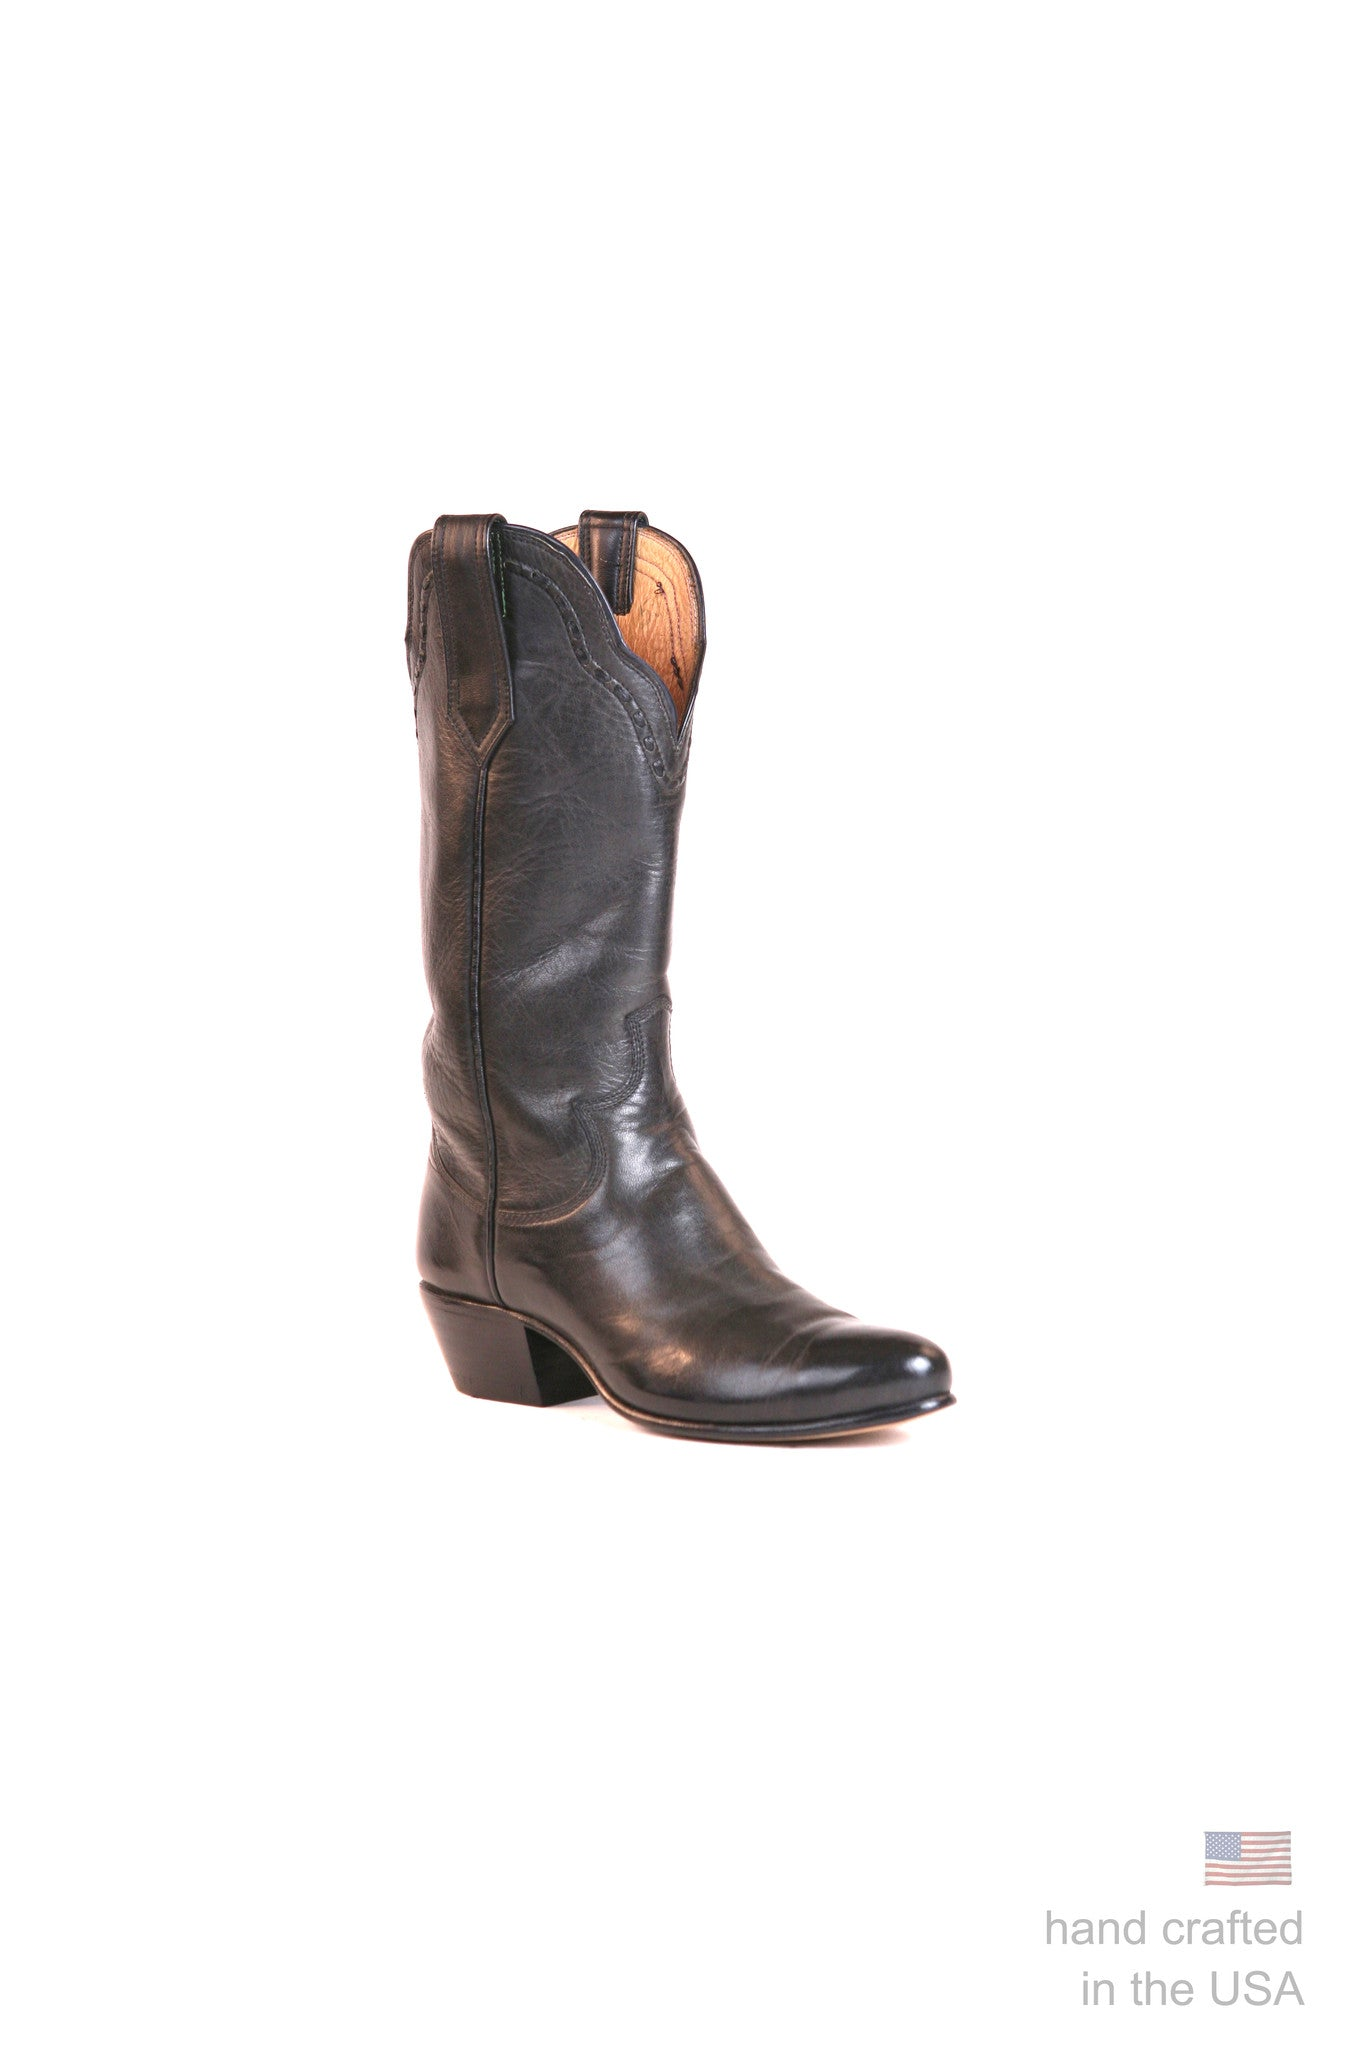 Singles: Boot 0064: Size 5C